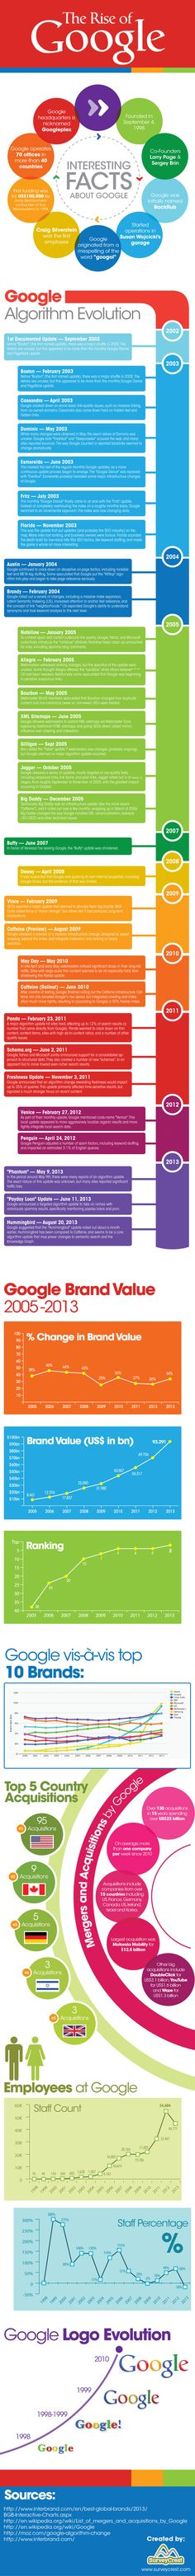 The Rise of #Google #infopgraphic